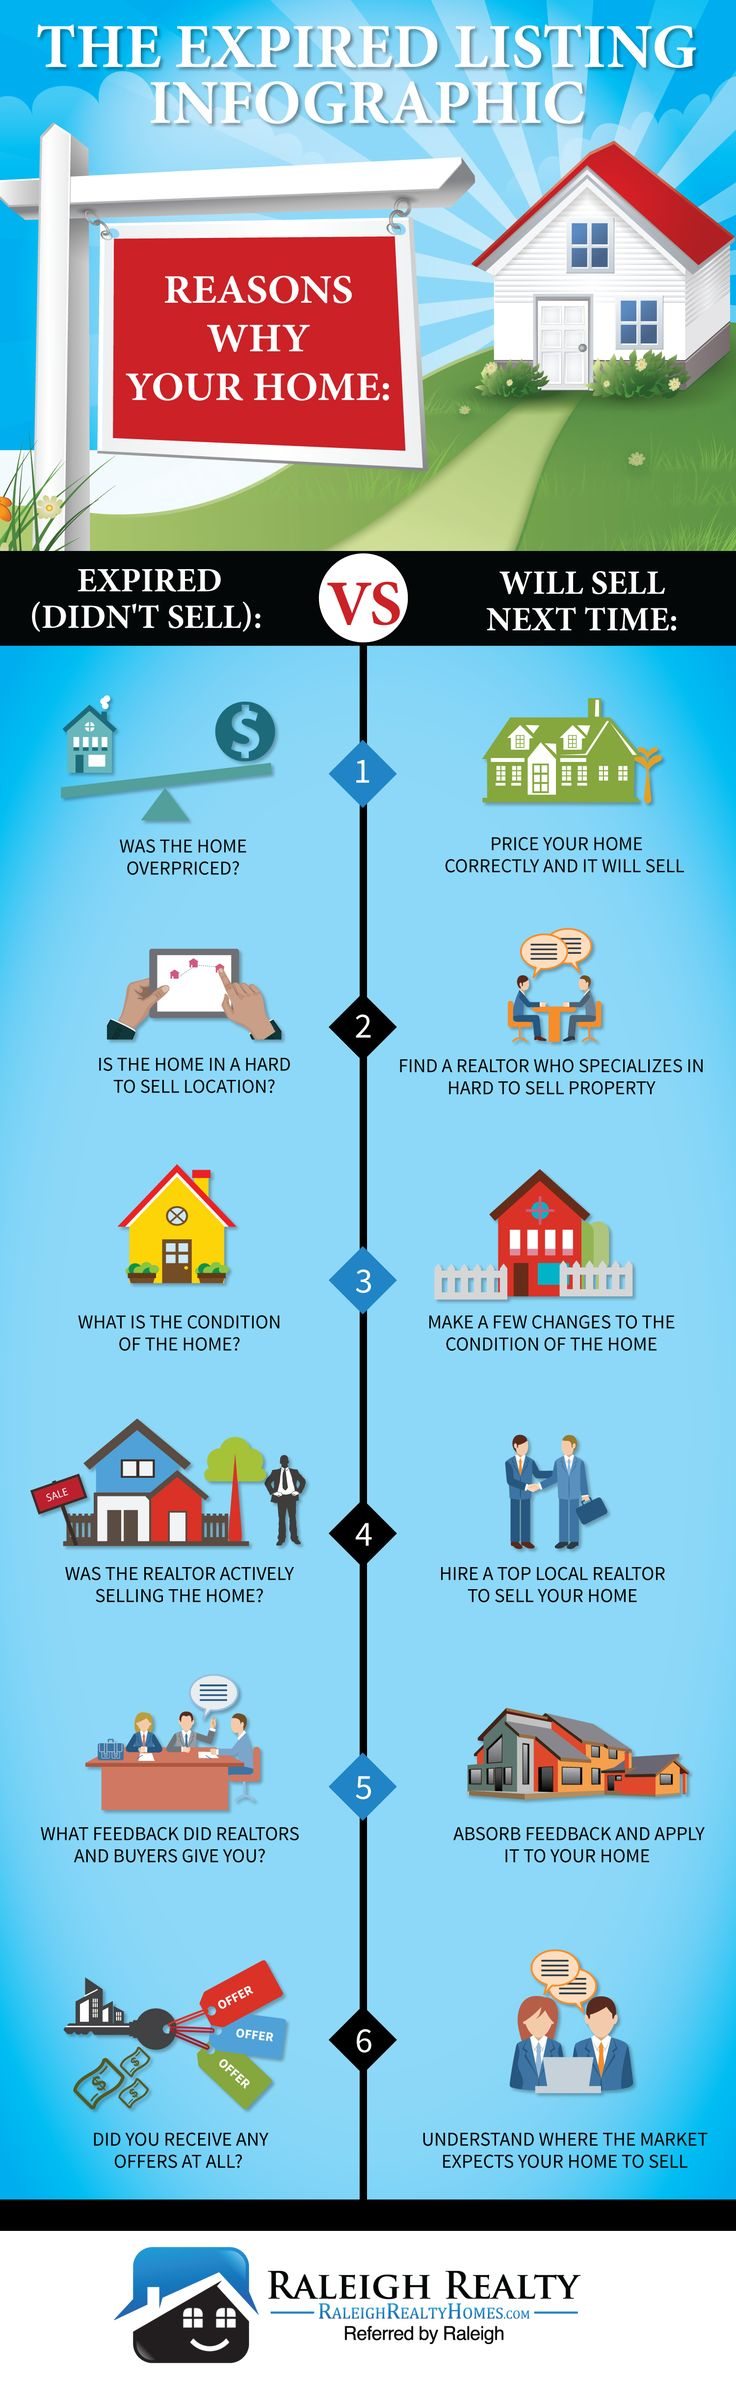 Expired Listing Infographic   Reasons why my home didn't sell: http://www.raleighrealtyhomes.com/blog/selling-your-home-after-it-becomes-an-expired-listing.html